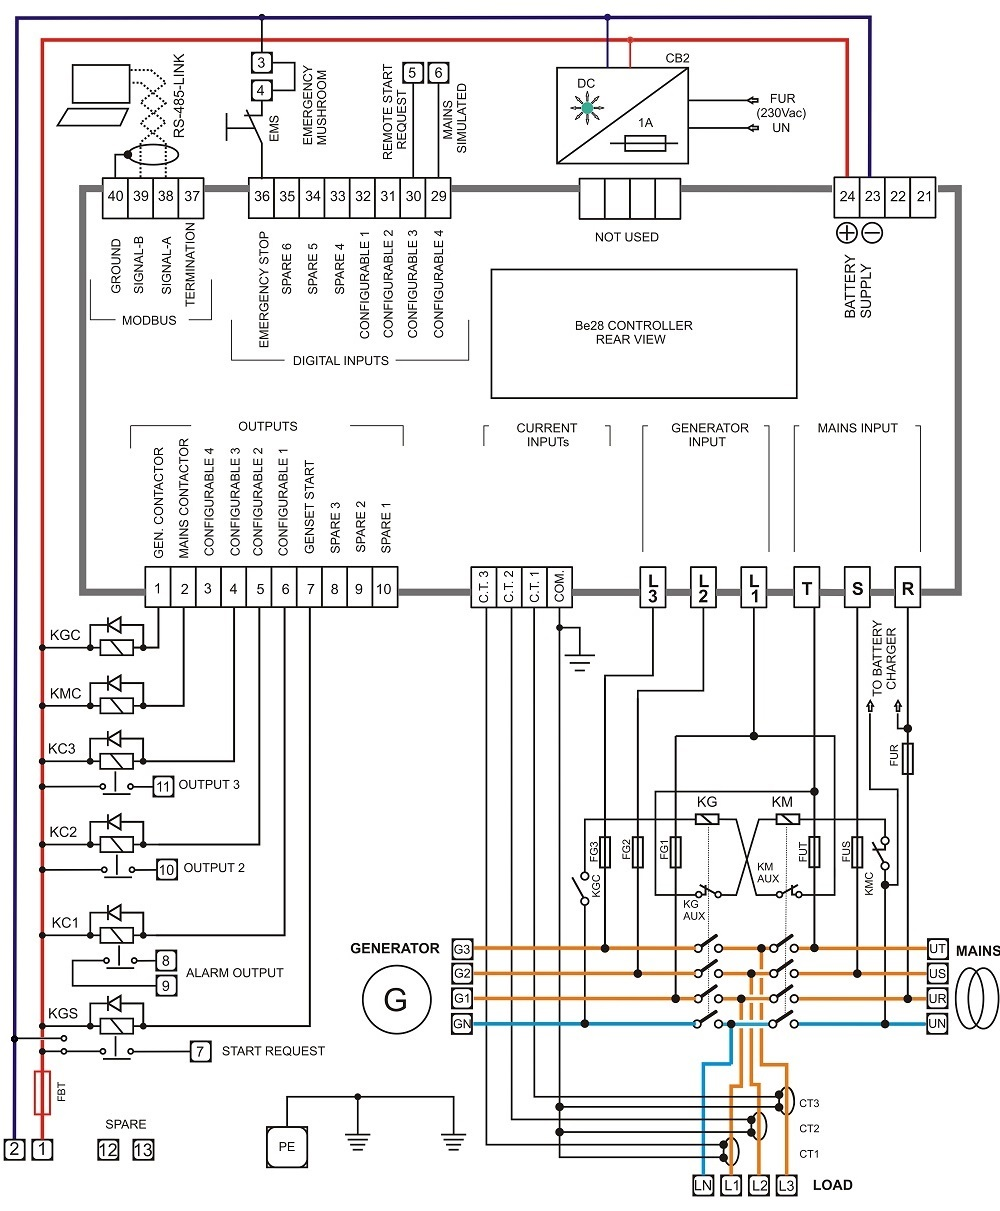 Citroen xsara picasso electrical diagram somurich citroen xsara picasso electrical diagram citroen berlingo central locking wiring diagram wiring diagramrh asfbconference2016 Gallery